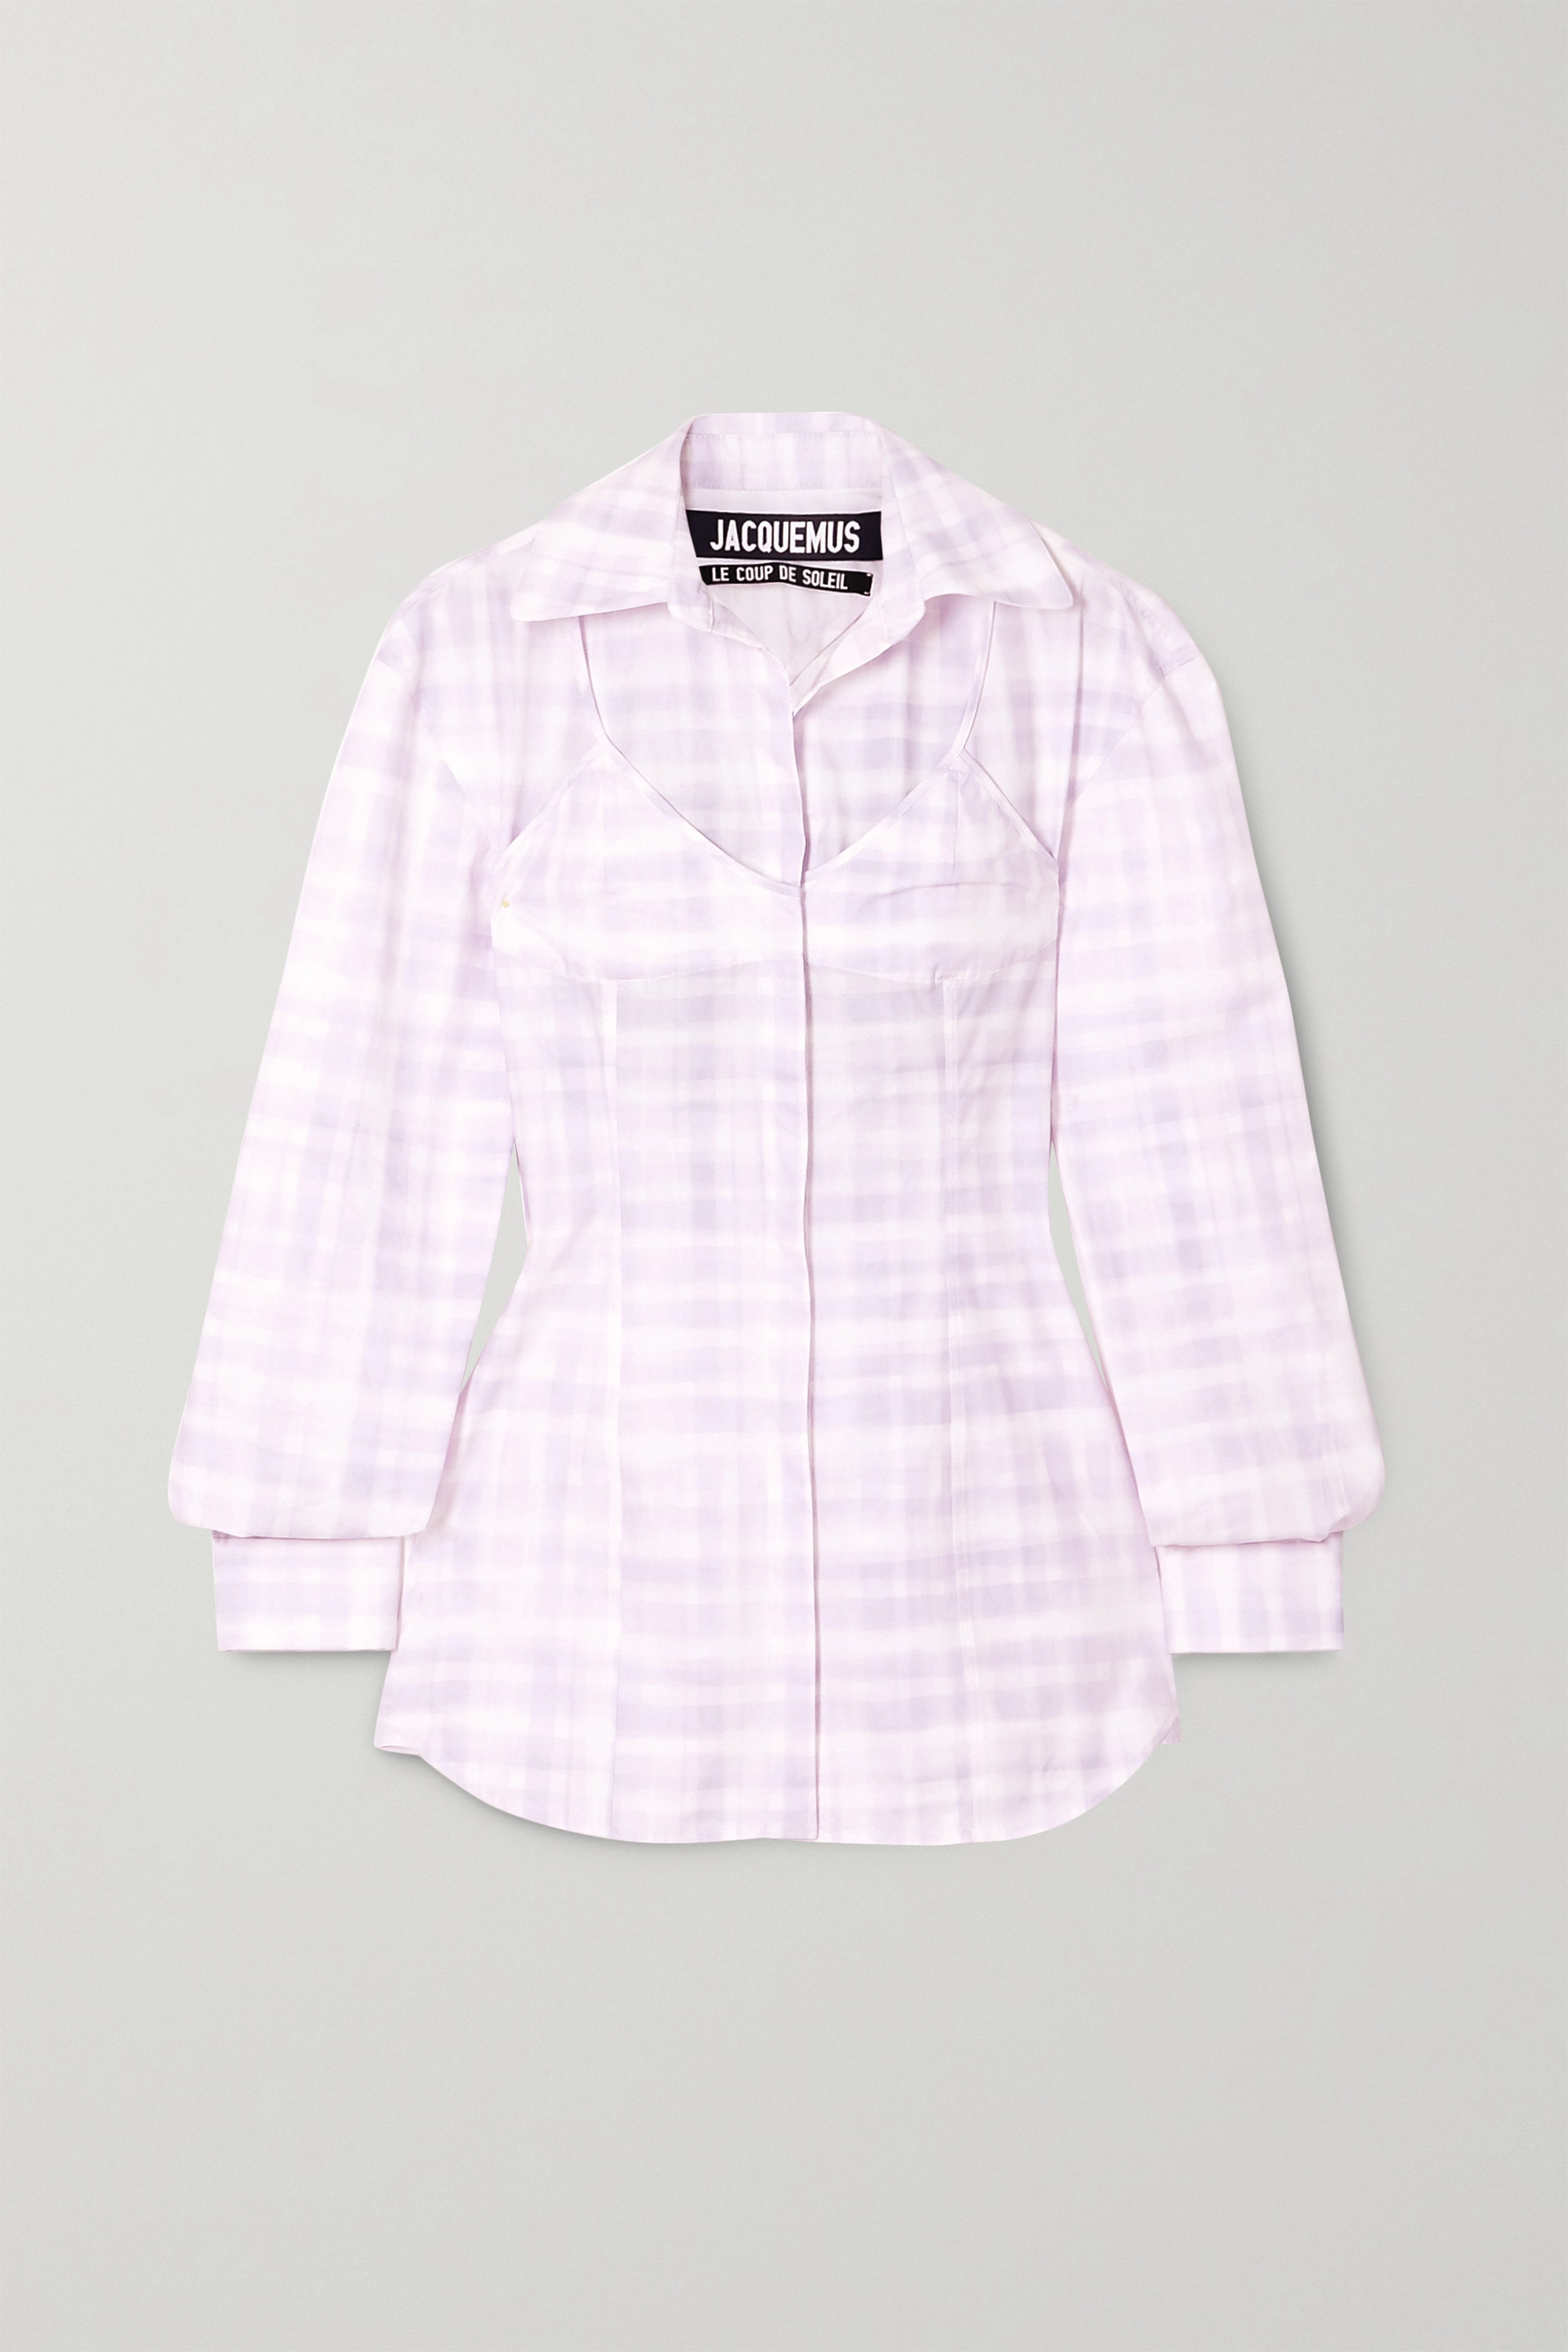 Jacquemus Valensole cutout checked cotton shirt